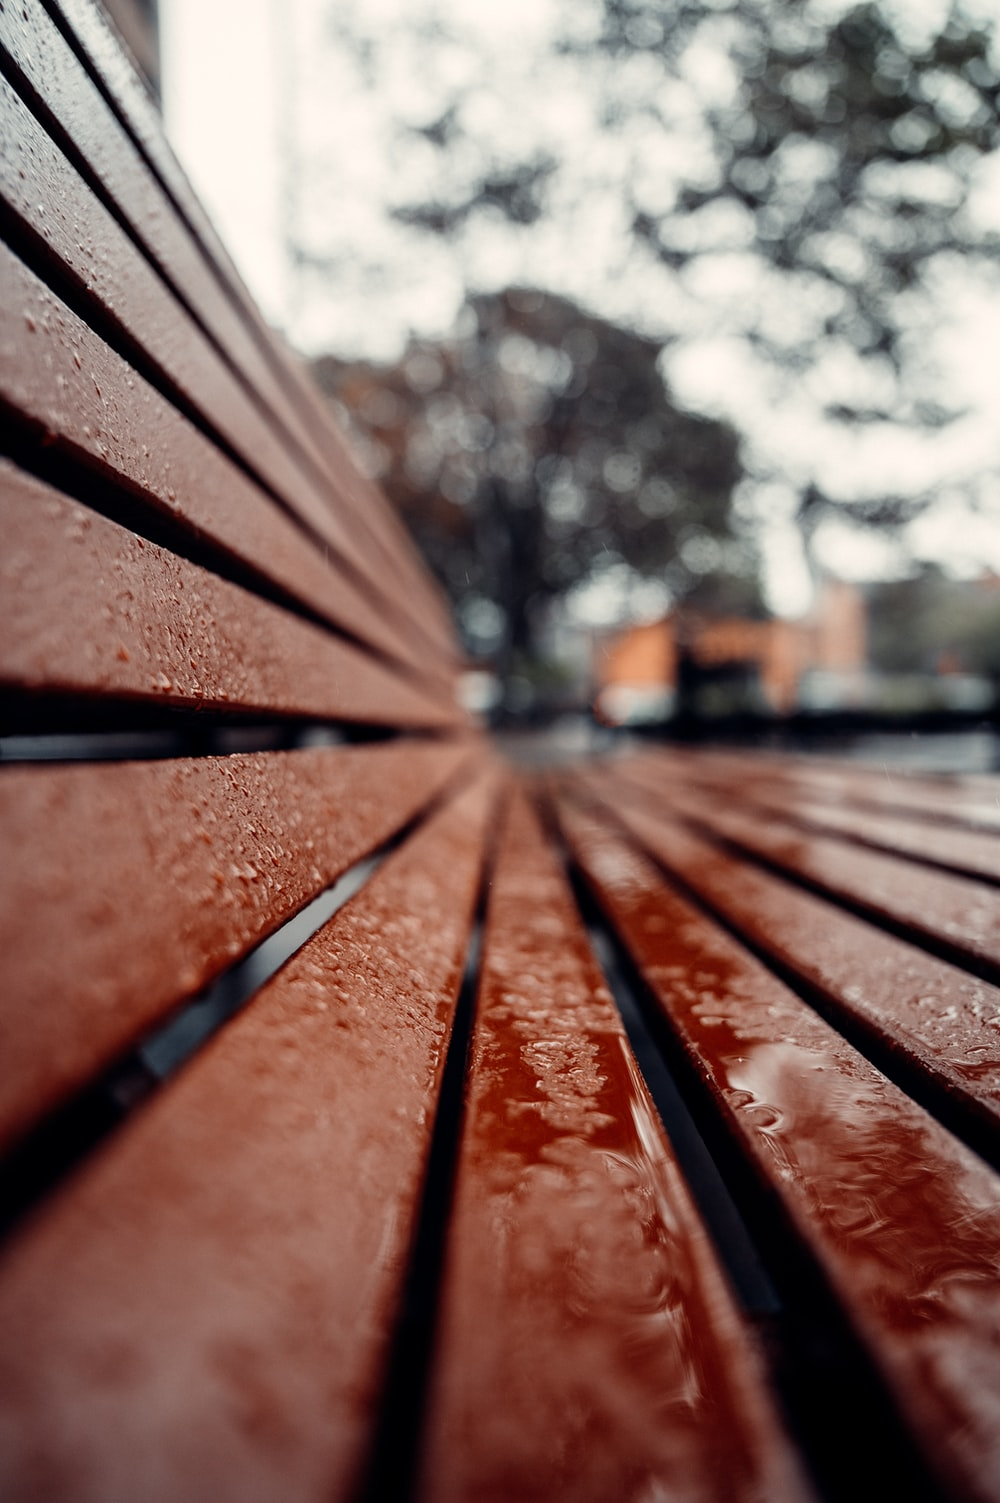 brown wooden bench near trees during daytime